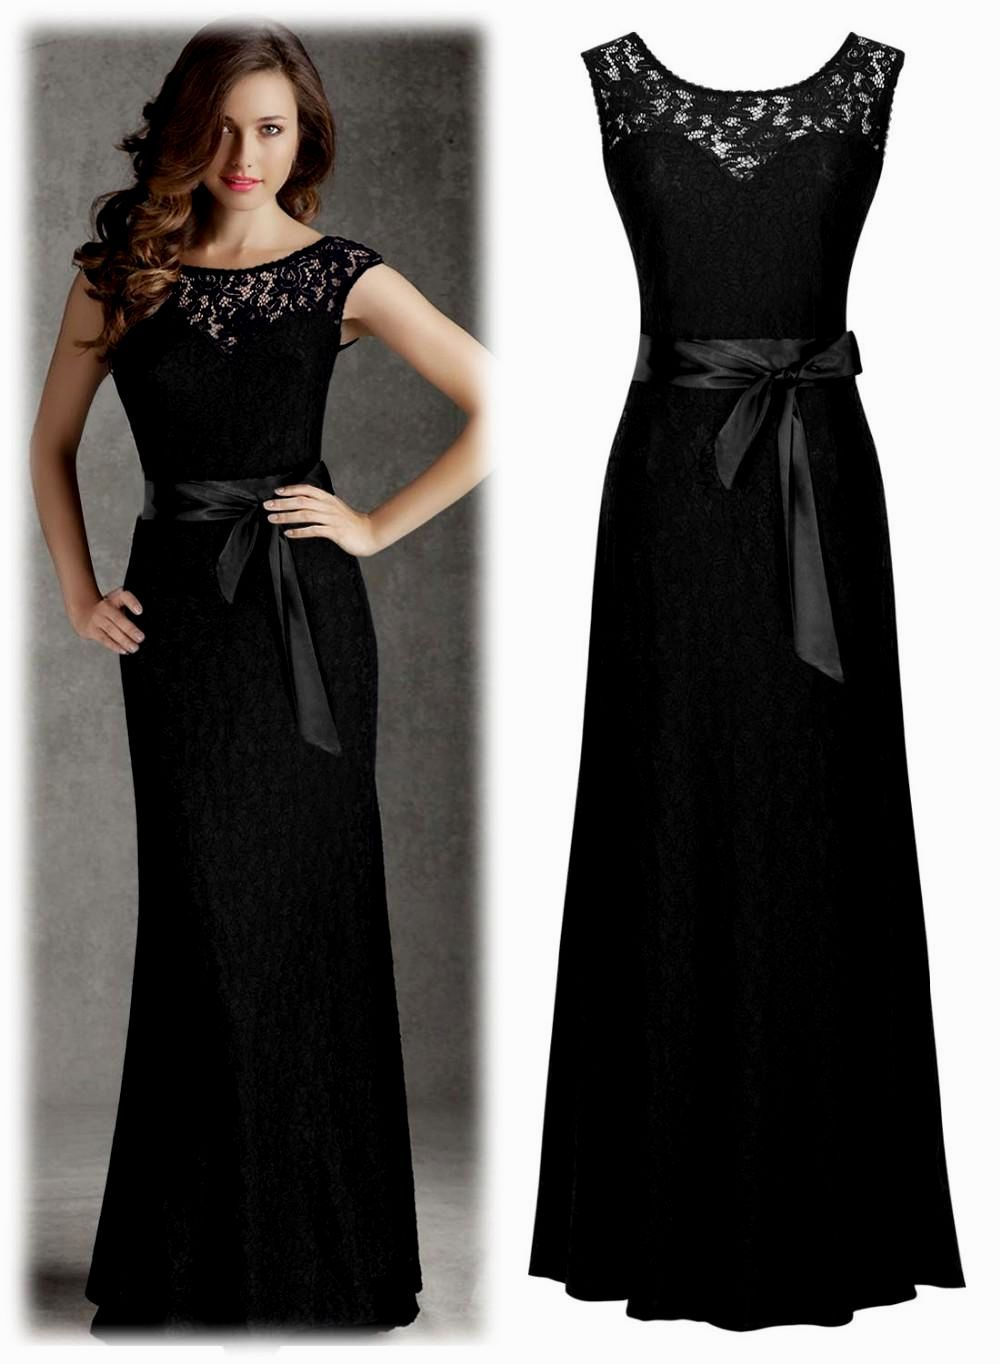 Ropriate Dress For Black Tie Wedding Dressy Dresses Weddings Check More At Http